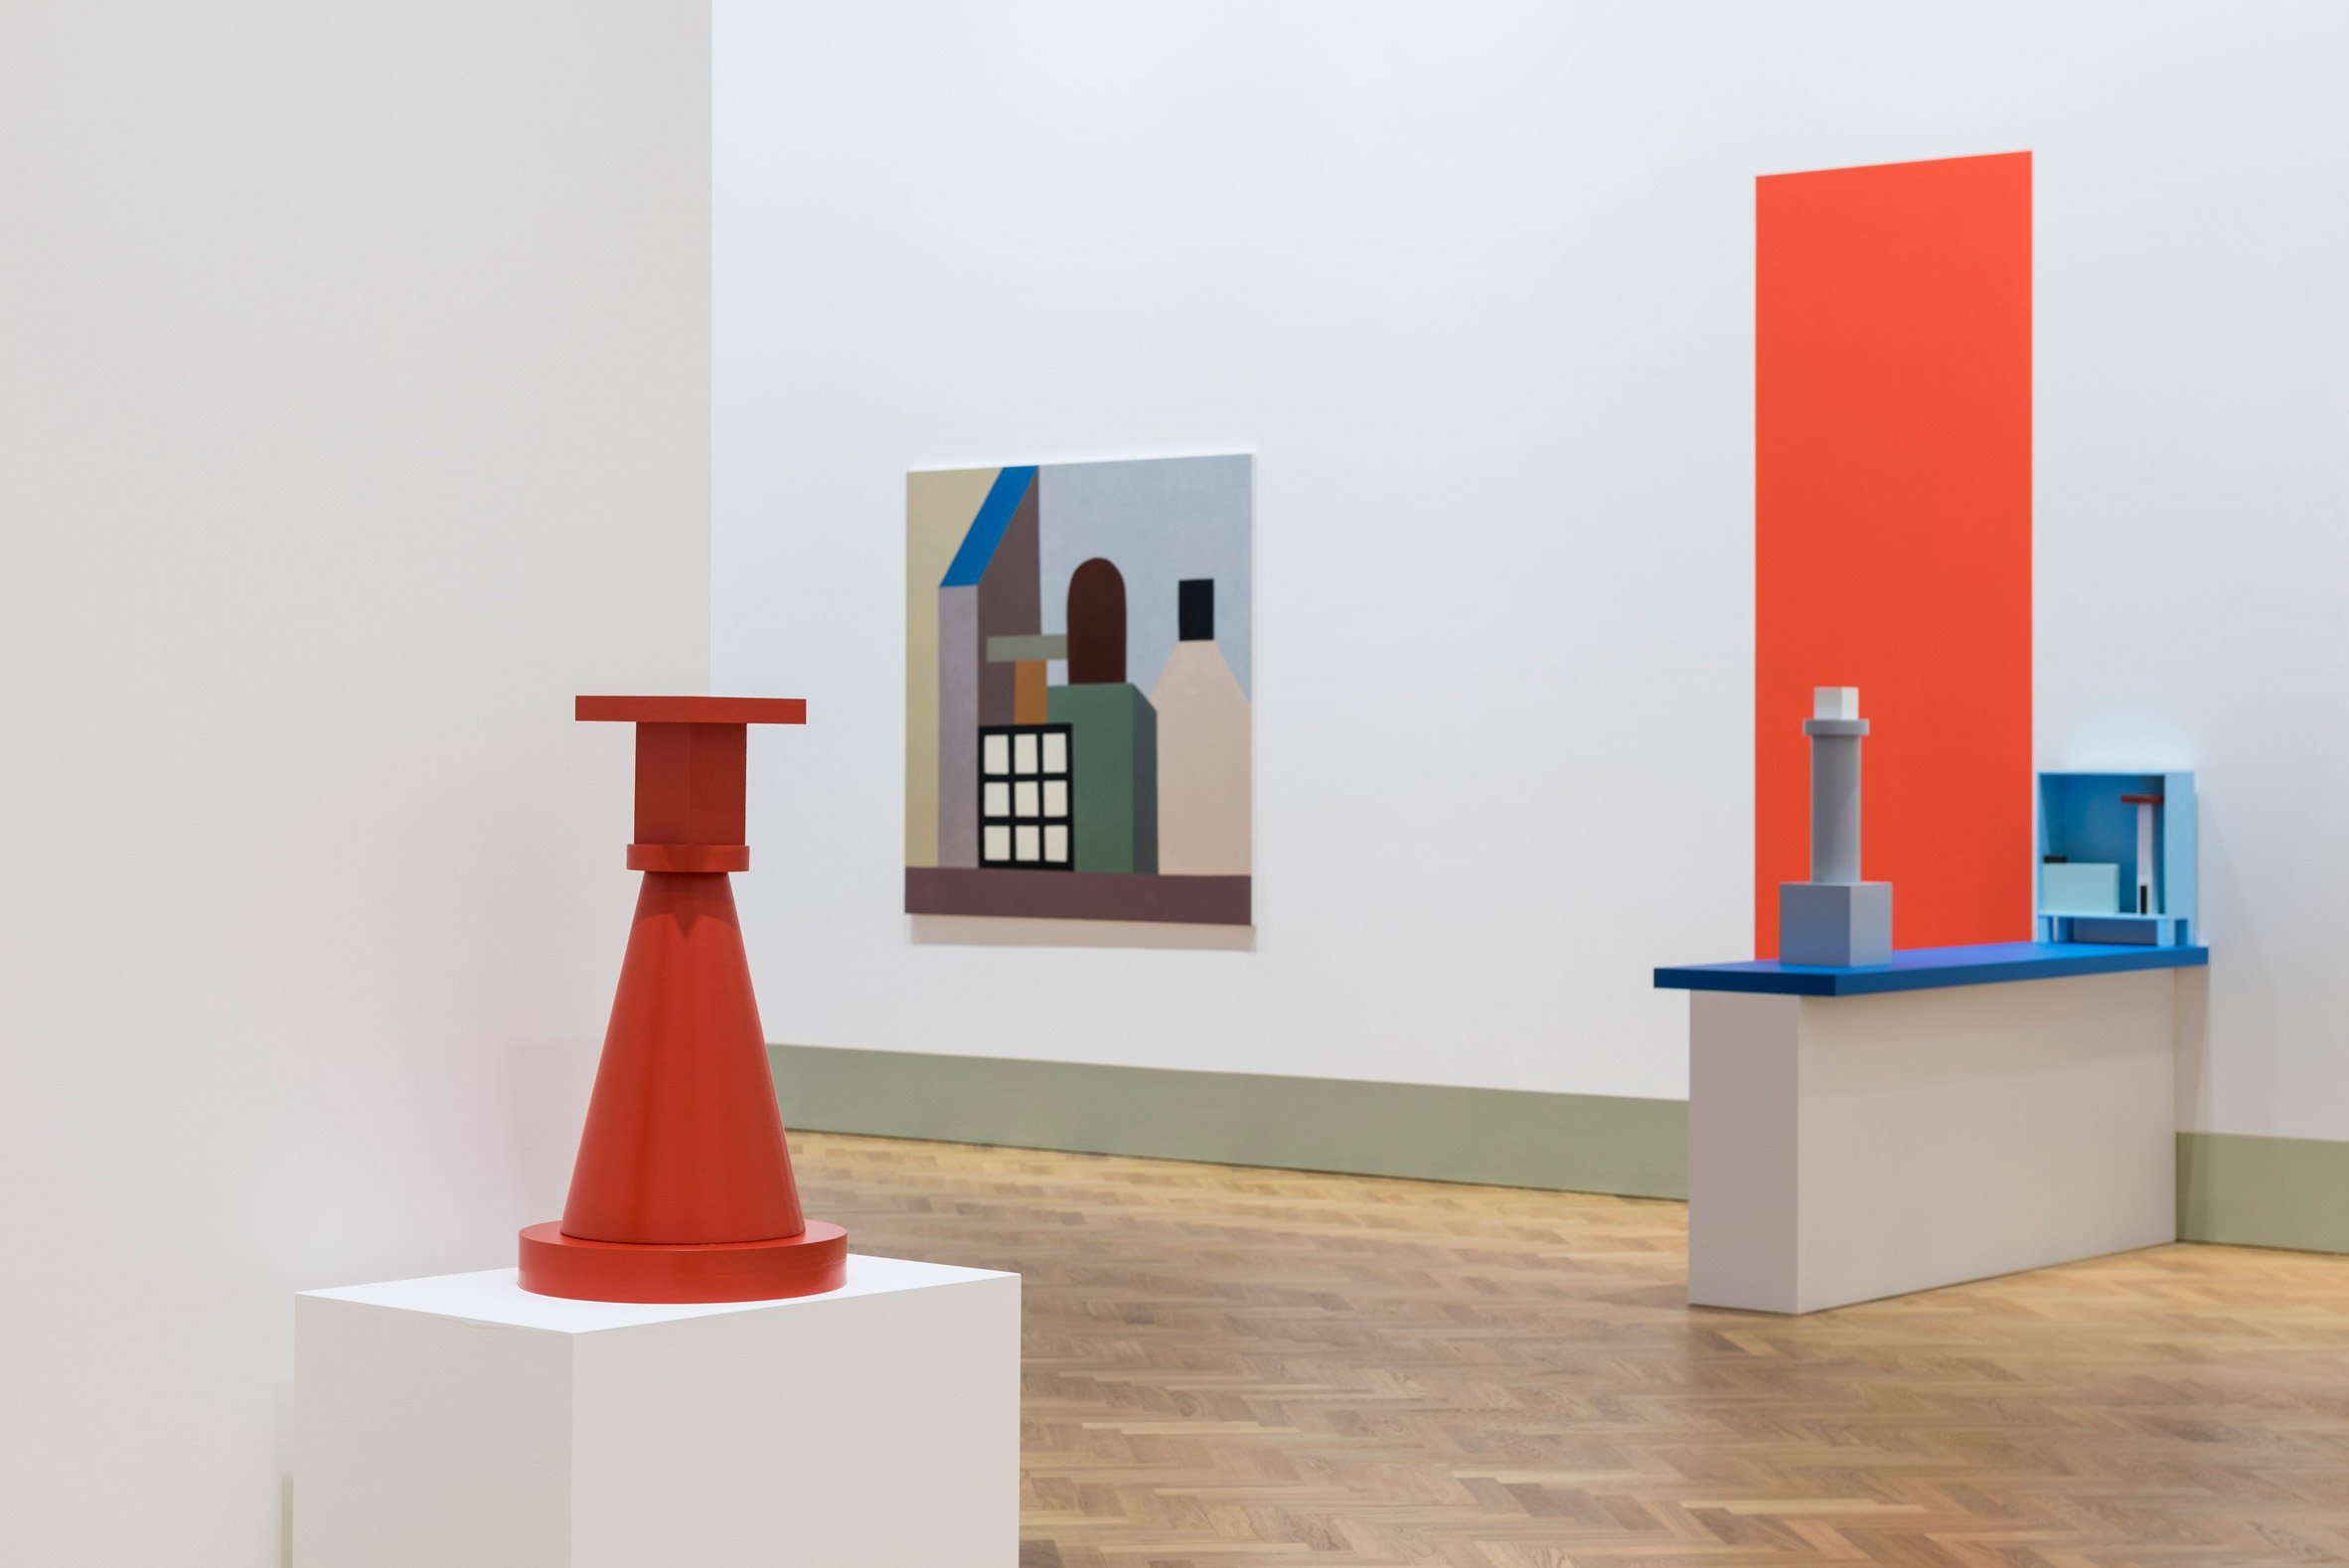 from-time-to-time-exhibition-nathalie-du-pasquier-design_dezeen_2364_col_20-1.jpg